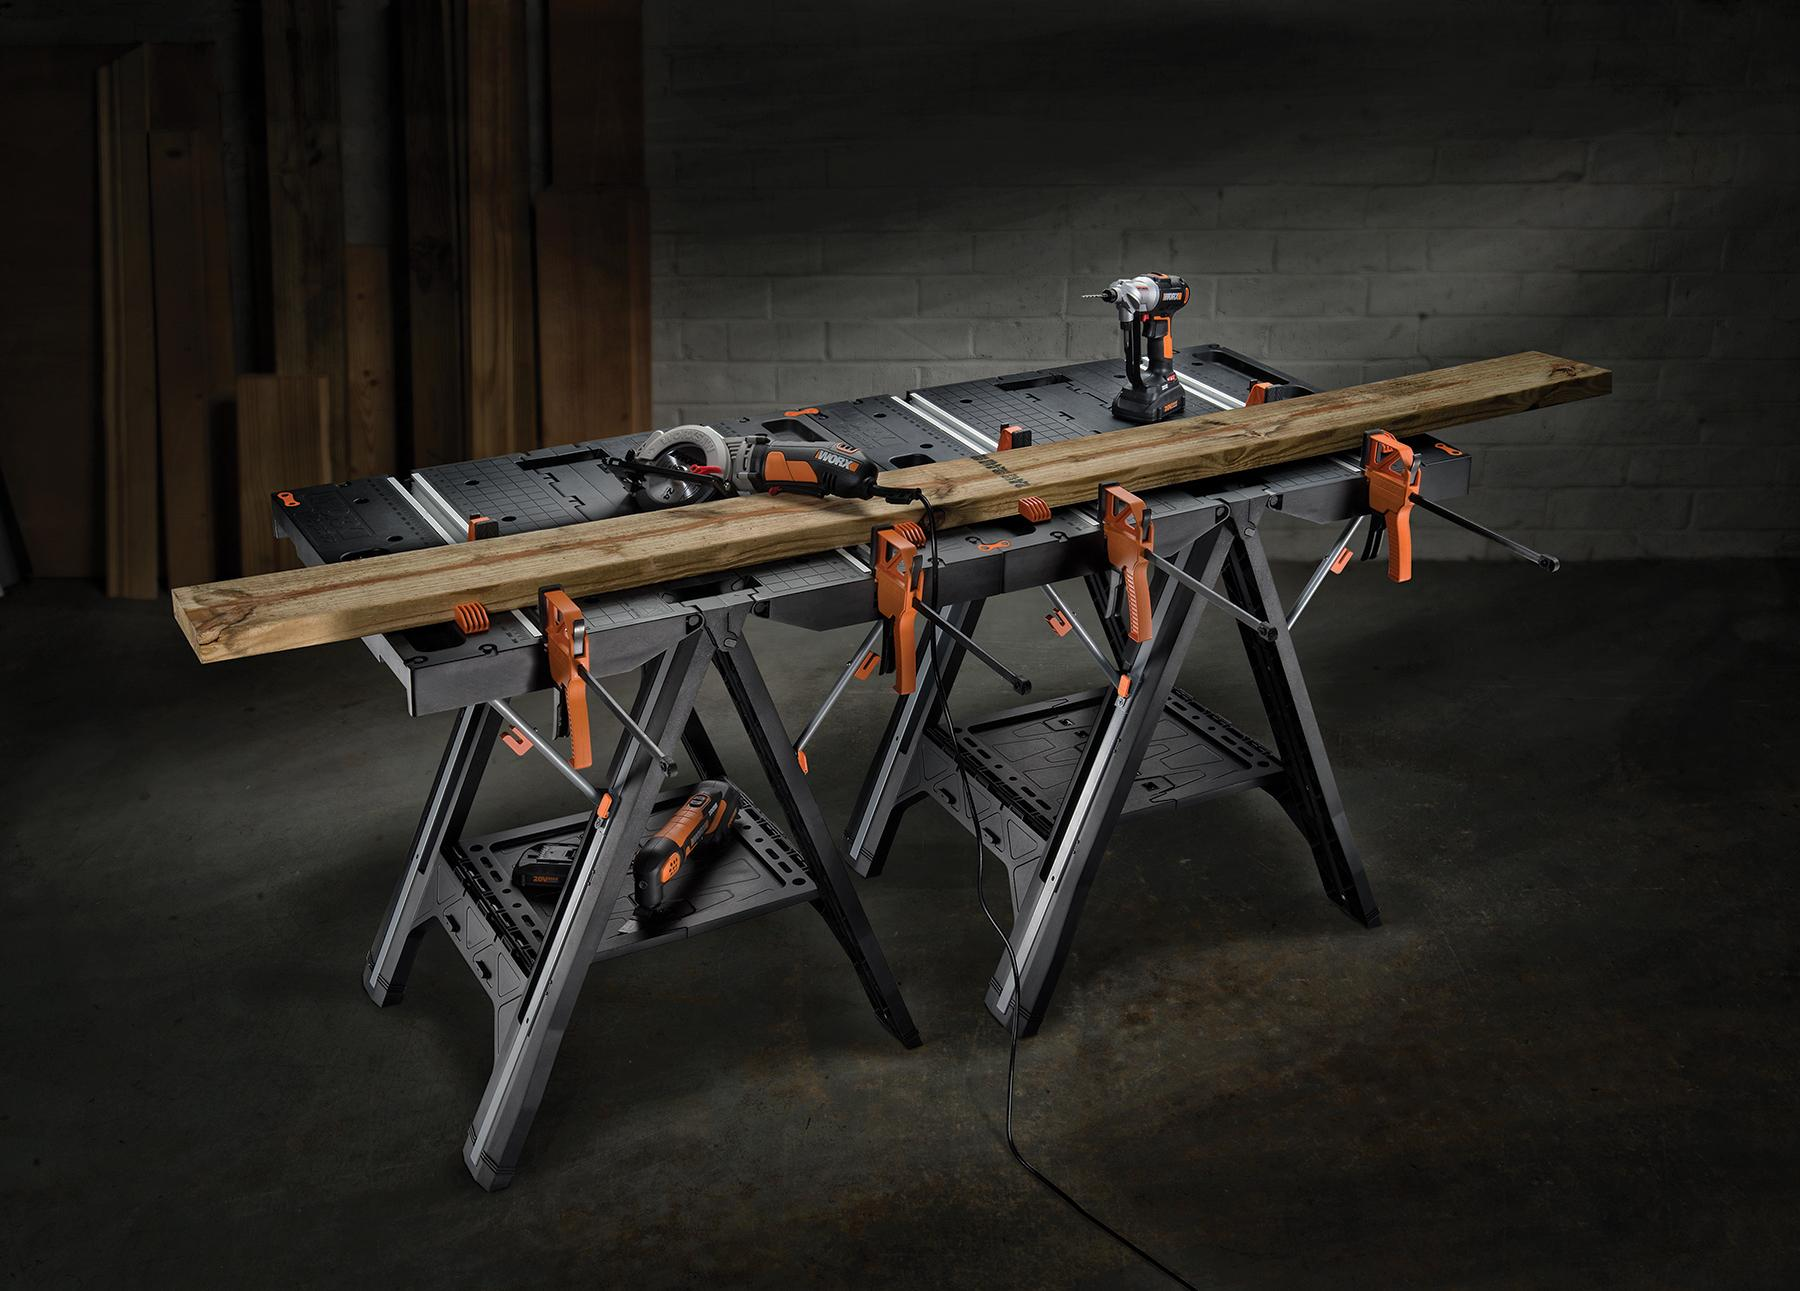 worx_pegasus_workbench_sawhorse_5 - The Awesomer